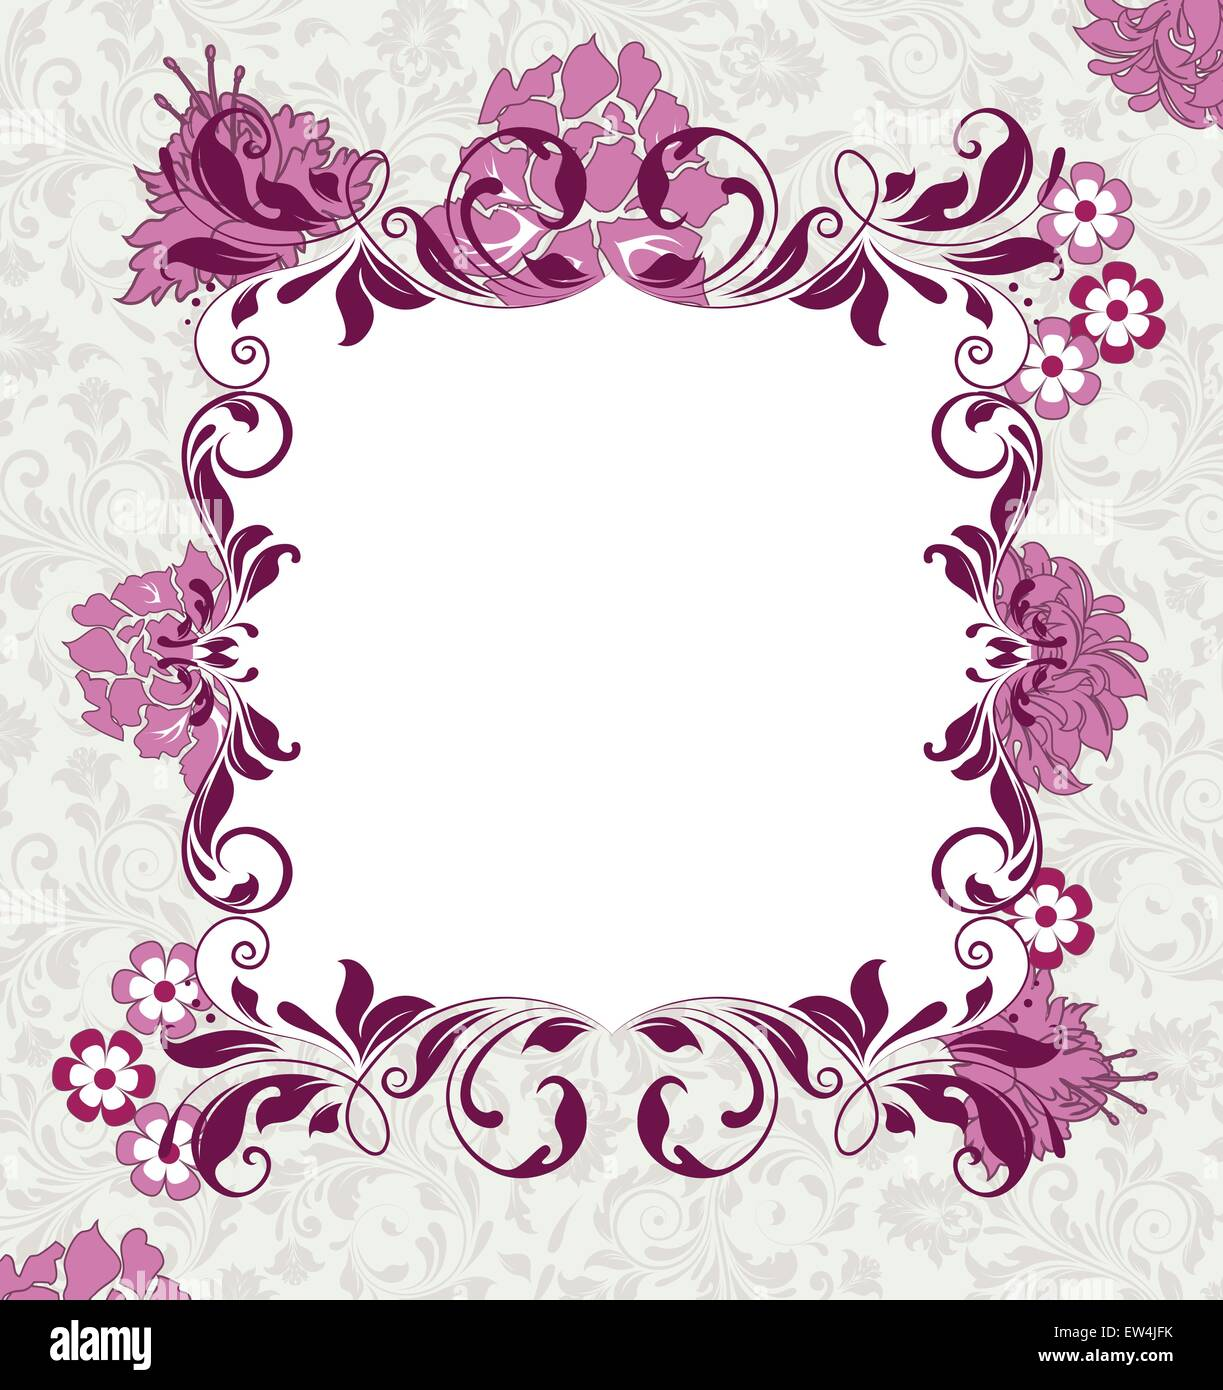 https www alamy com stock photo vintage invitation card with ornate elegant abstract floral design 84310231 html